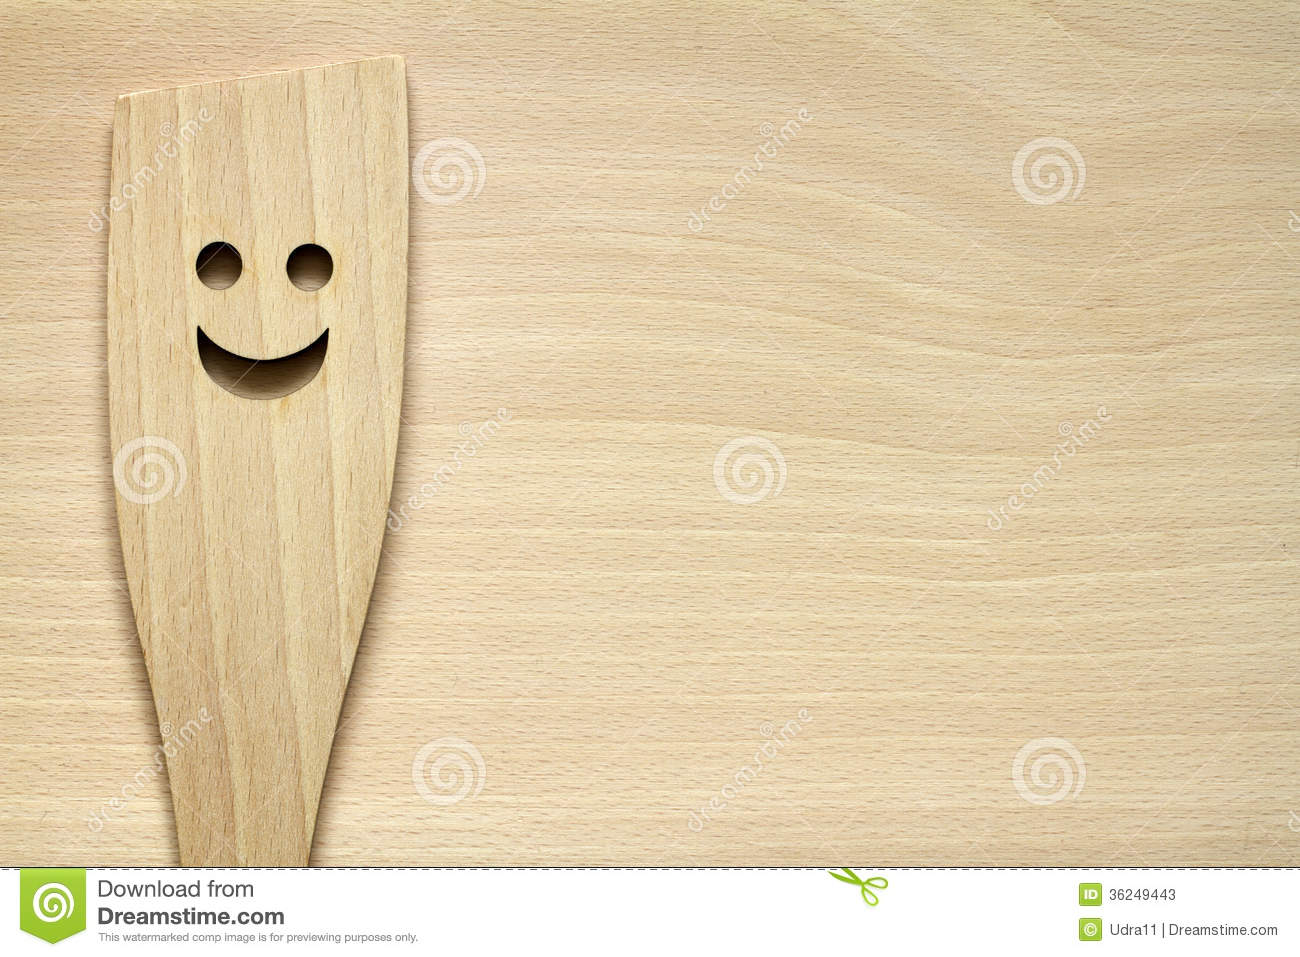 Wooden Kitchenware On Cutting Board Stock Photos - Image ...